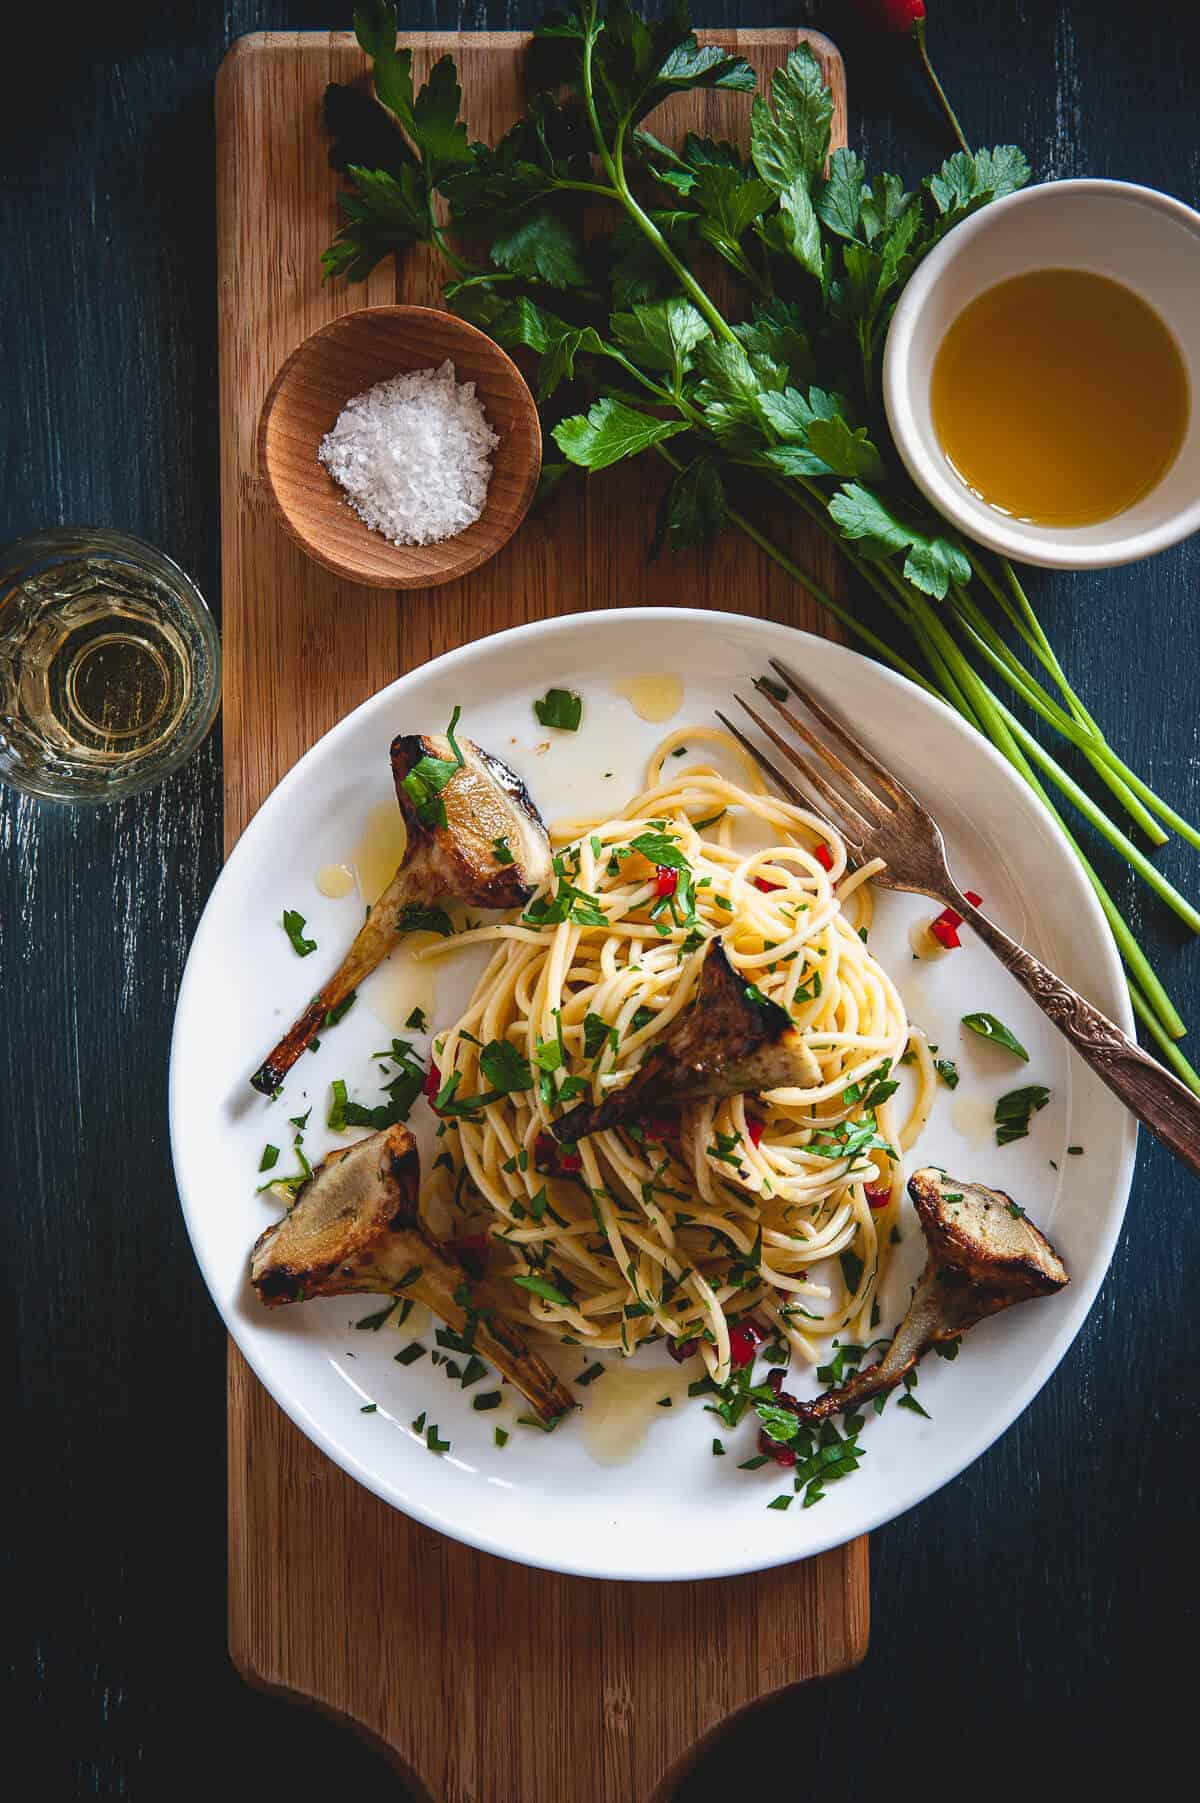 spaghetti with artichokes served in a plate on a board